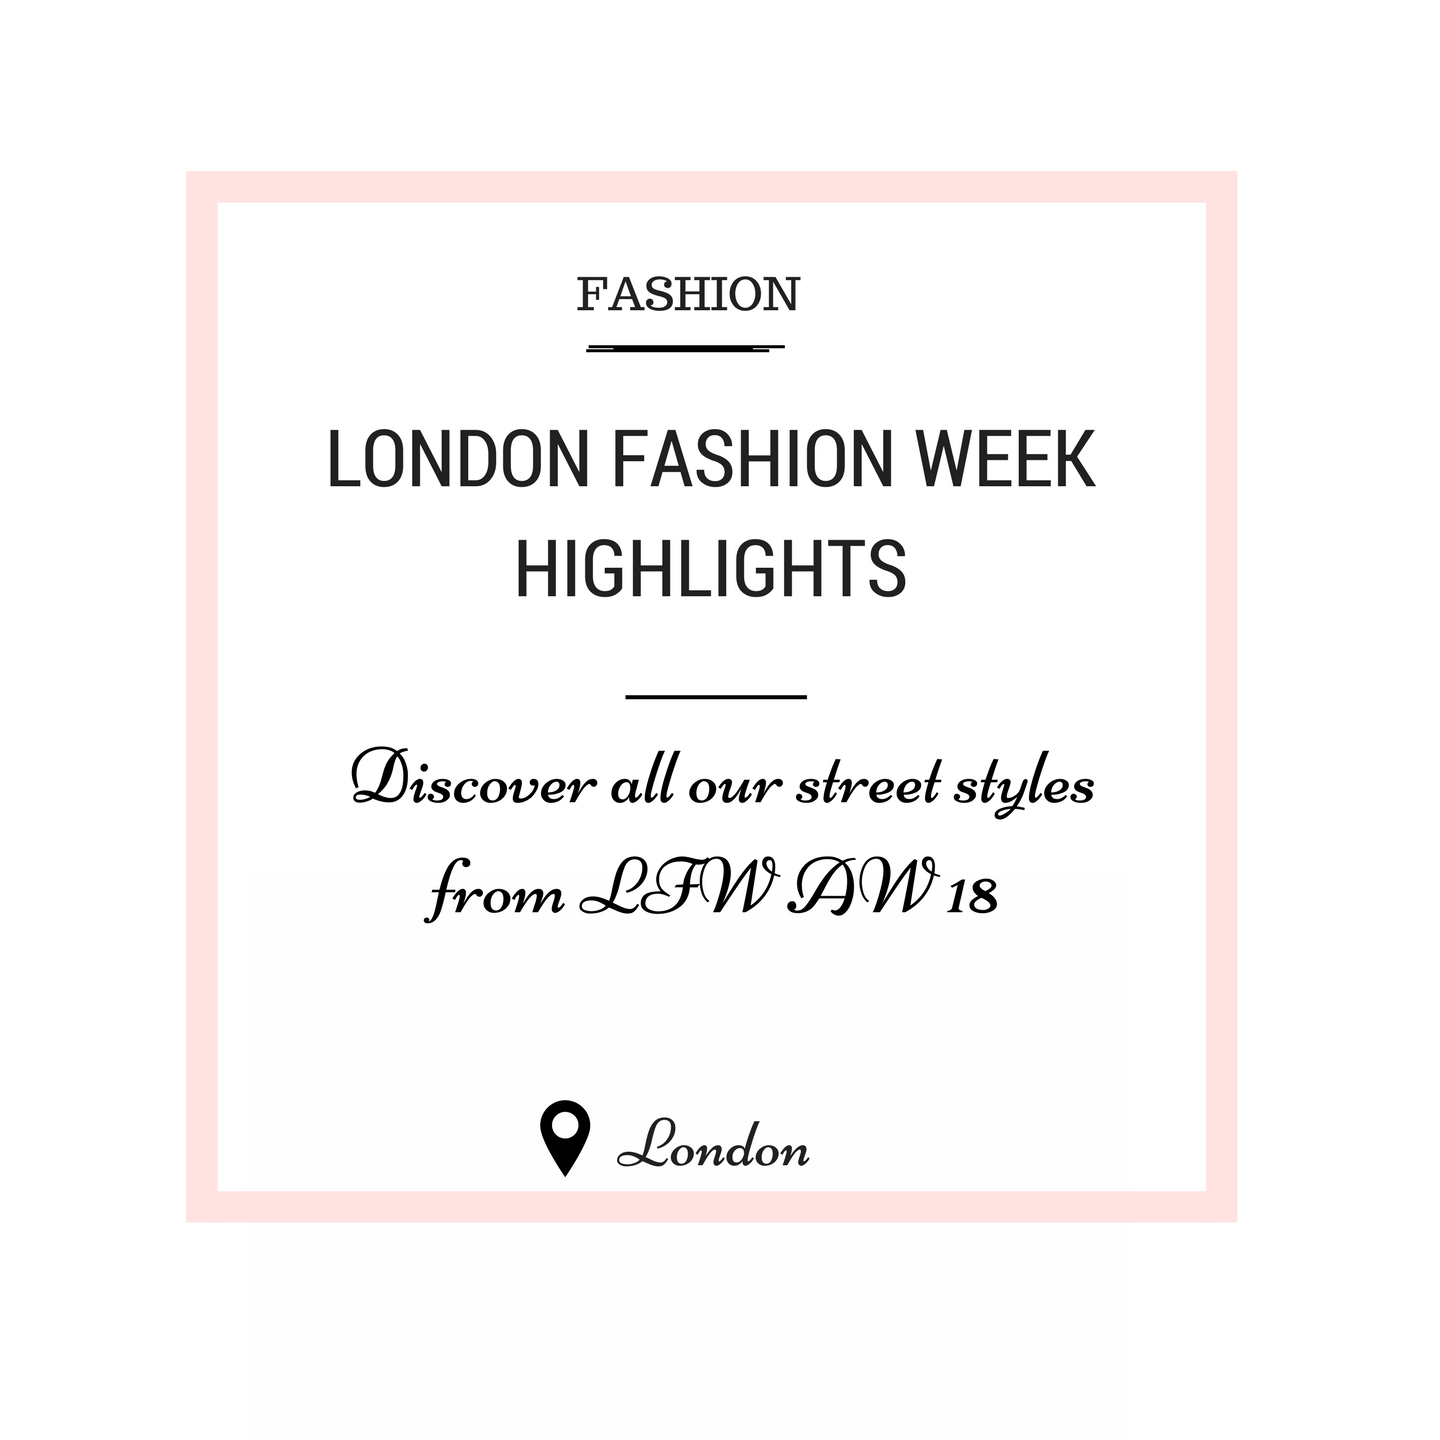 LONDON FASHION WEEKHIGHLIGHTS